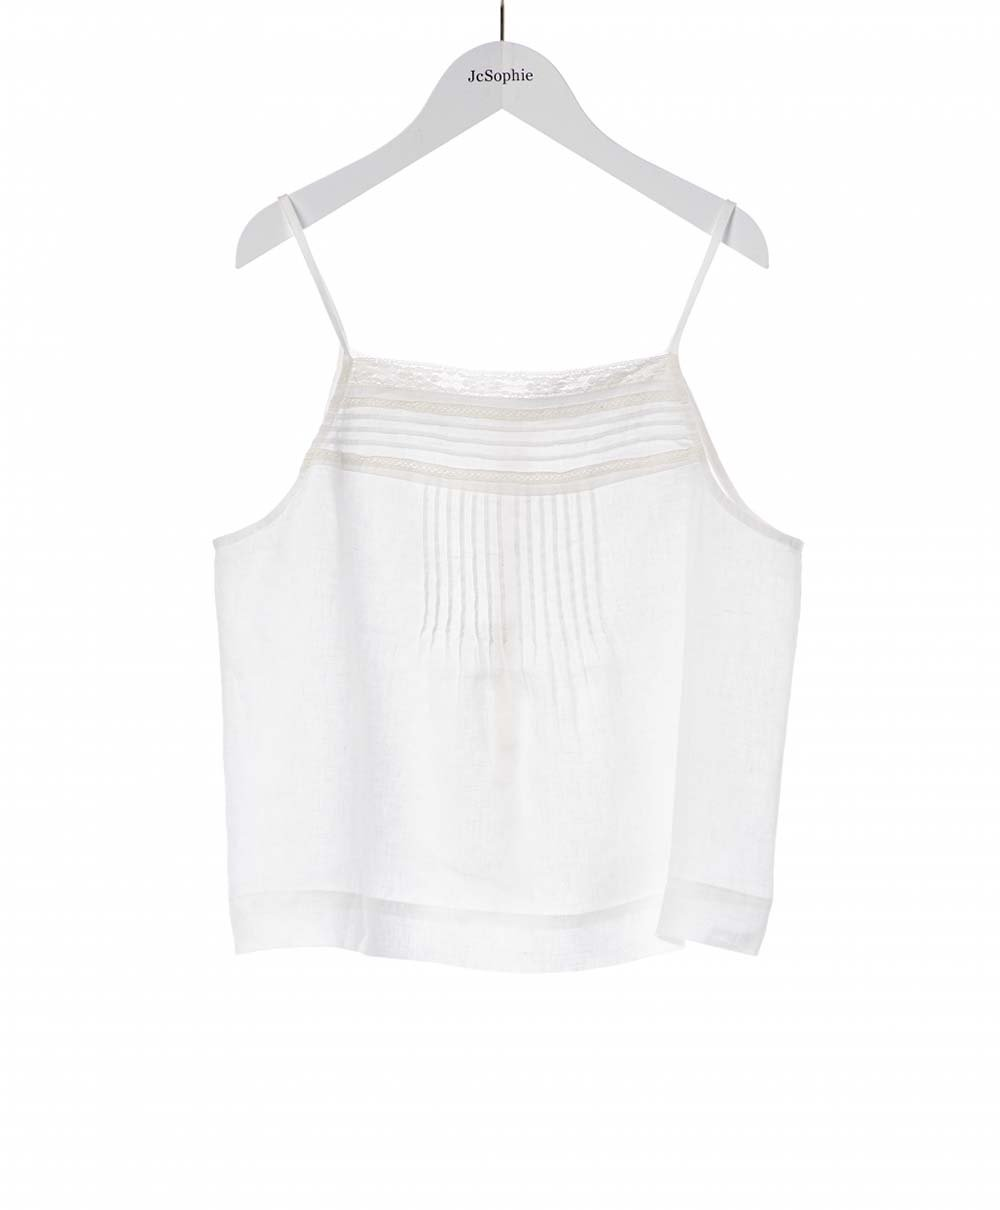 JC SOPHIE Top Hedda Off White | Artikelnummer: H1031 101